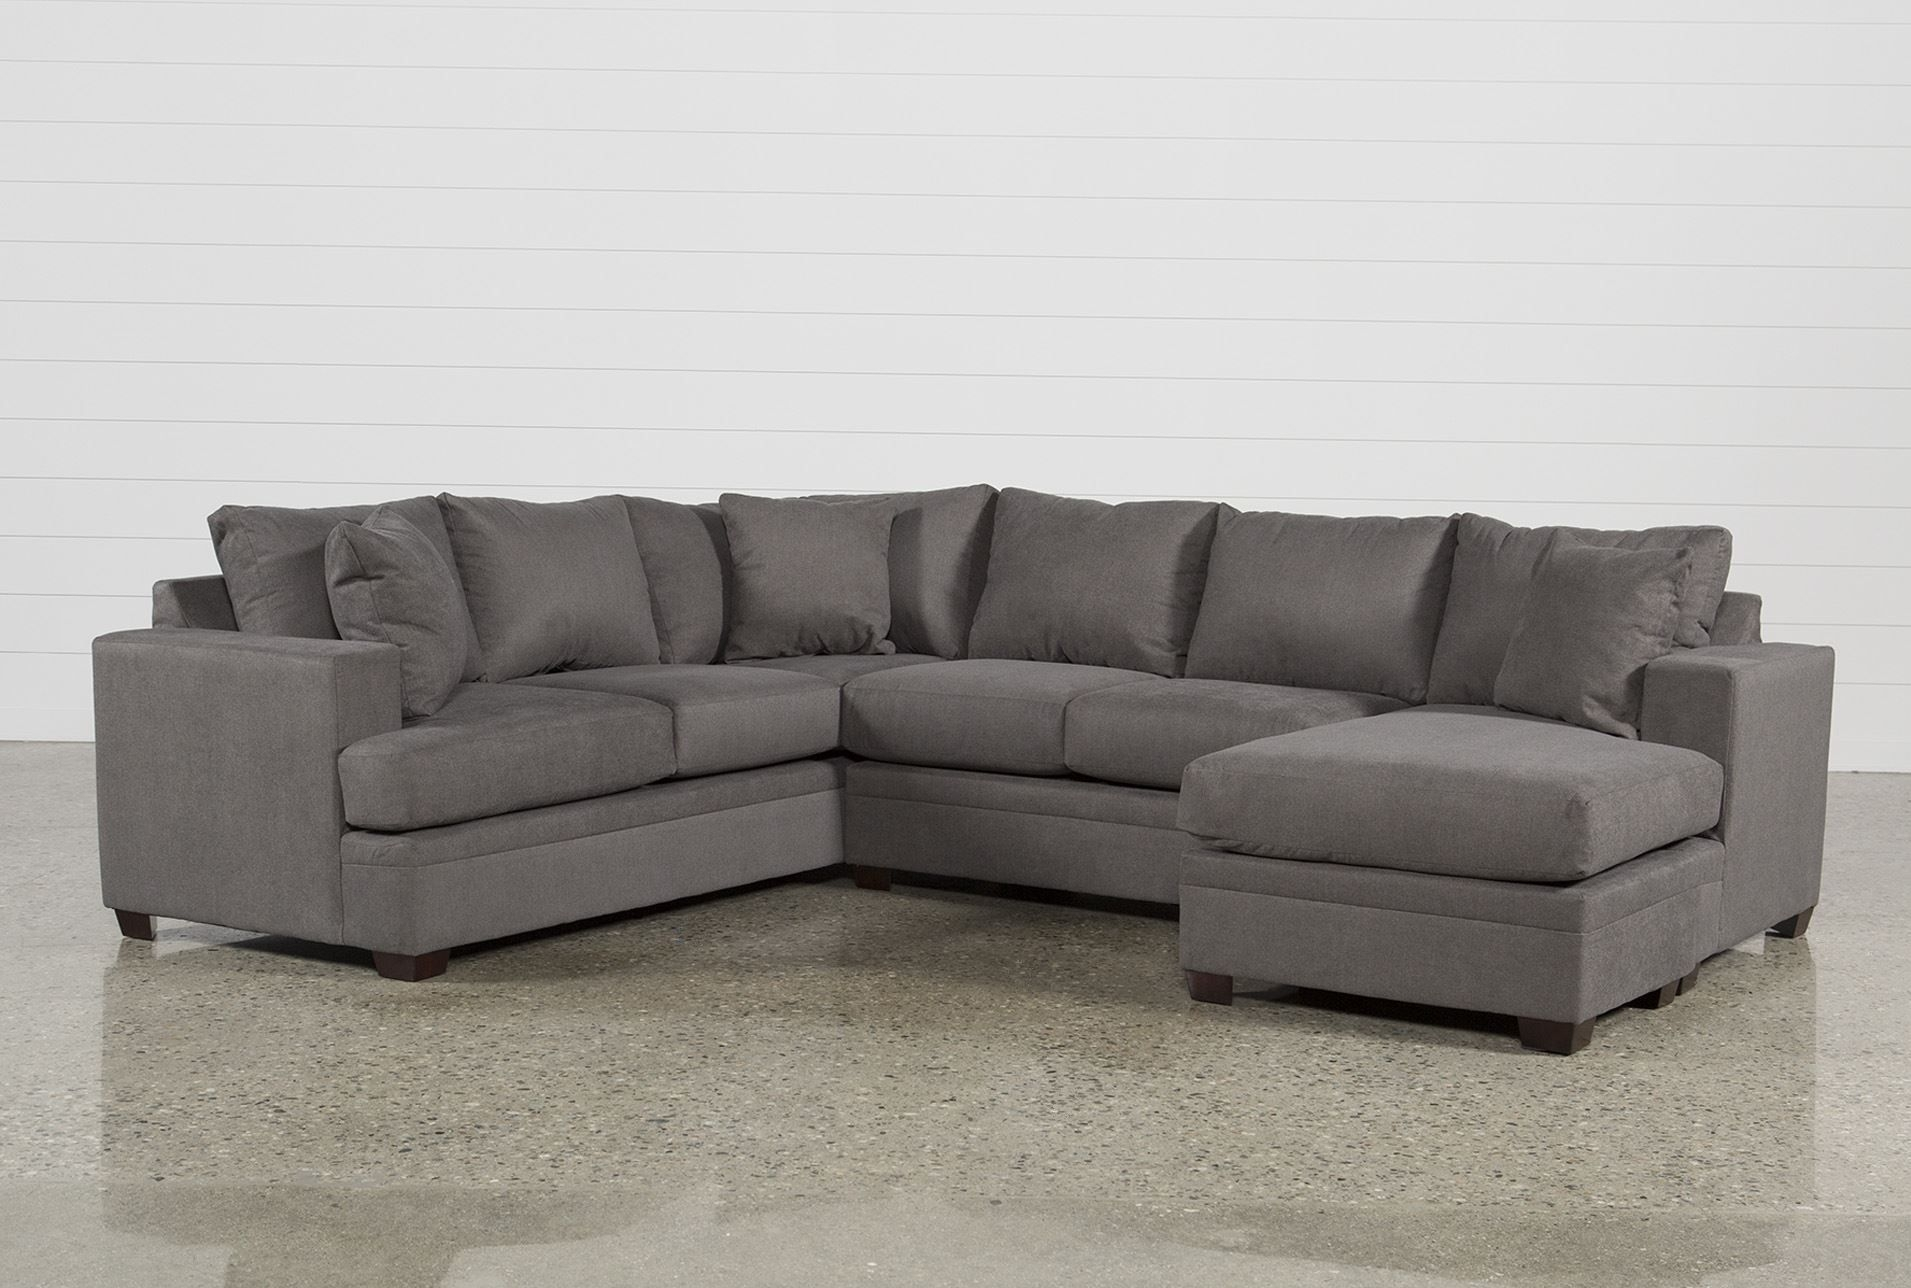 Kerri 2 Piece Sectional W/raf Chaise In 2018 | Products | Pinterest In Mcculla Sofa Sectionals With Reversible Chaise (Image 11 of 25)